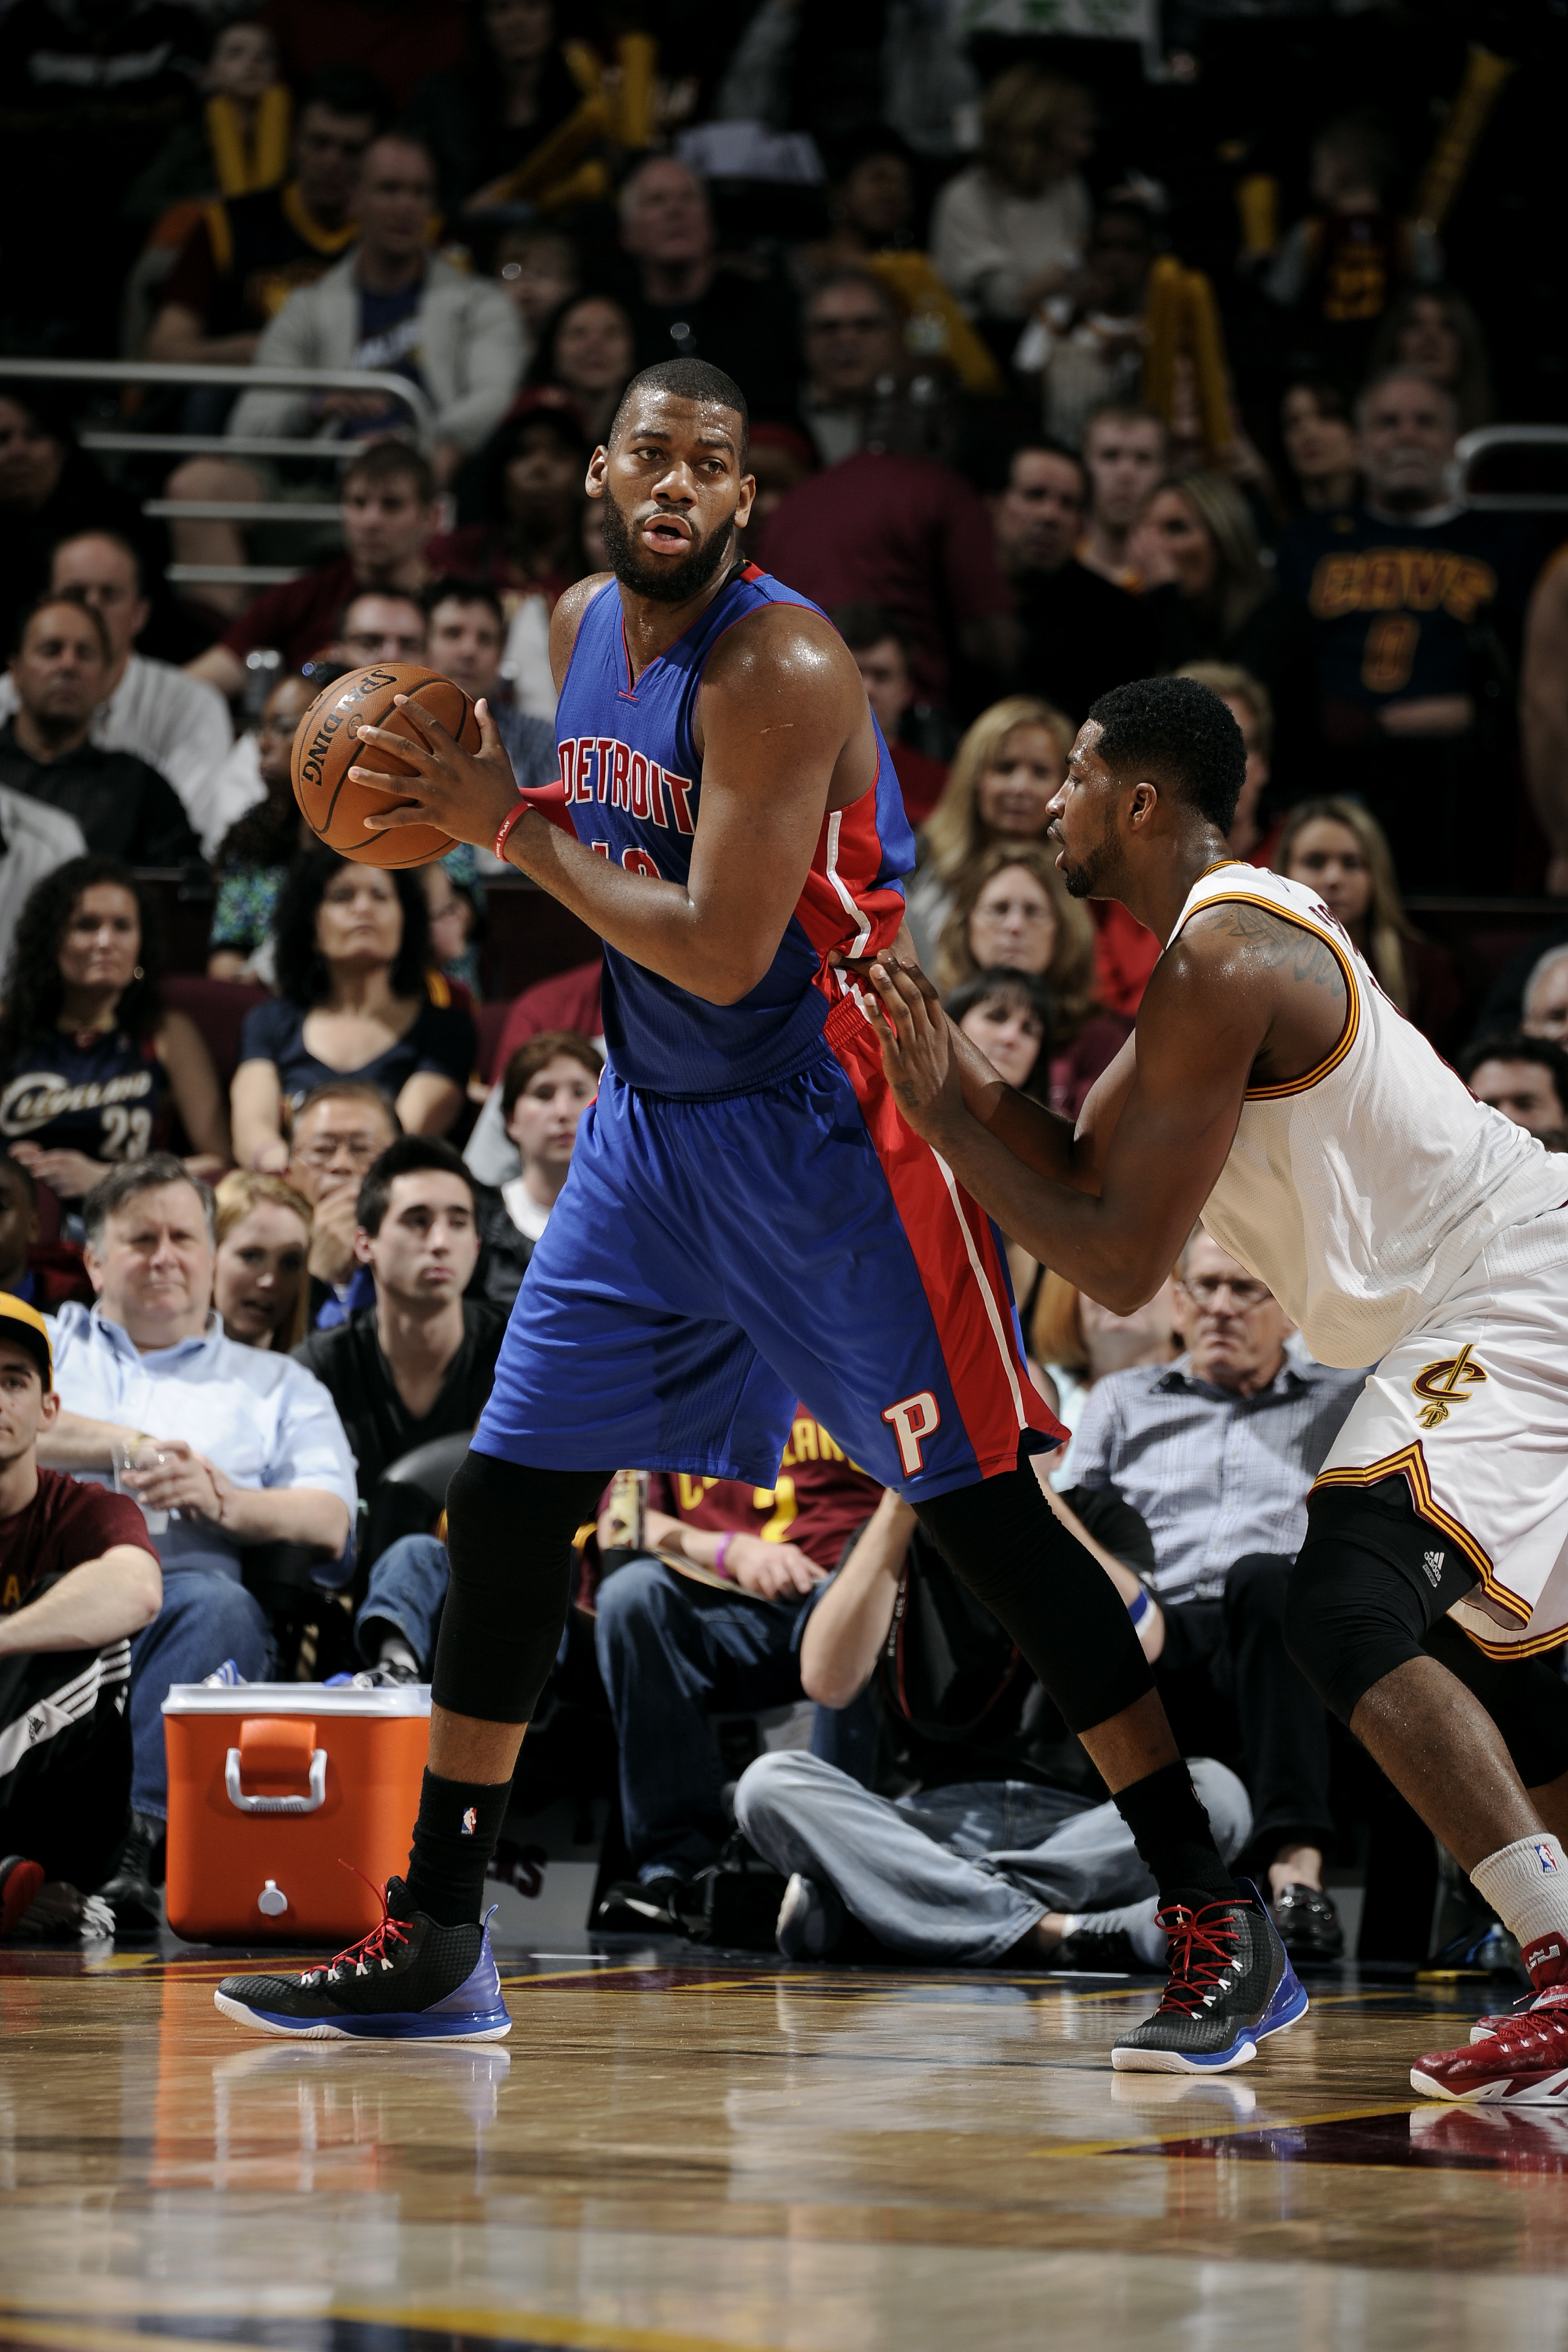 CLEVELAND, OH - APRIL 13: Greg Monroe #10 of the Detroit Pistons handles the ball against the Cleveland Cavaliers at The Quicken Loans Arena on April 13, 2015 in Cleveland, Ohio. (Photo by David Liam Kyle/NBAE via Getty Images)